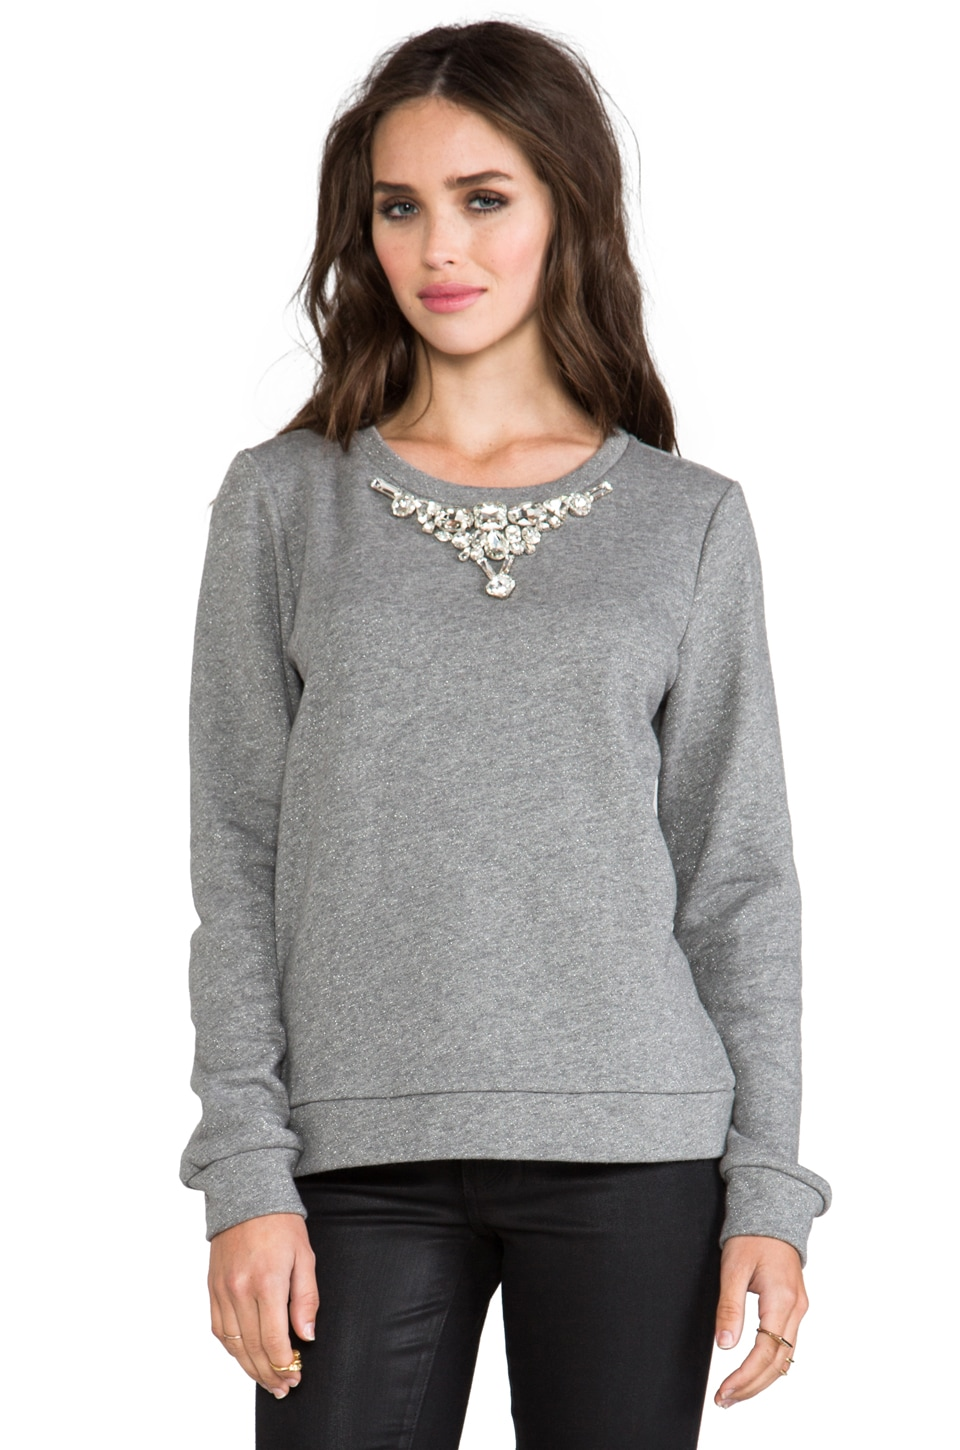 Funktional Illumination Sweatshirt in Heather Grey